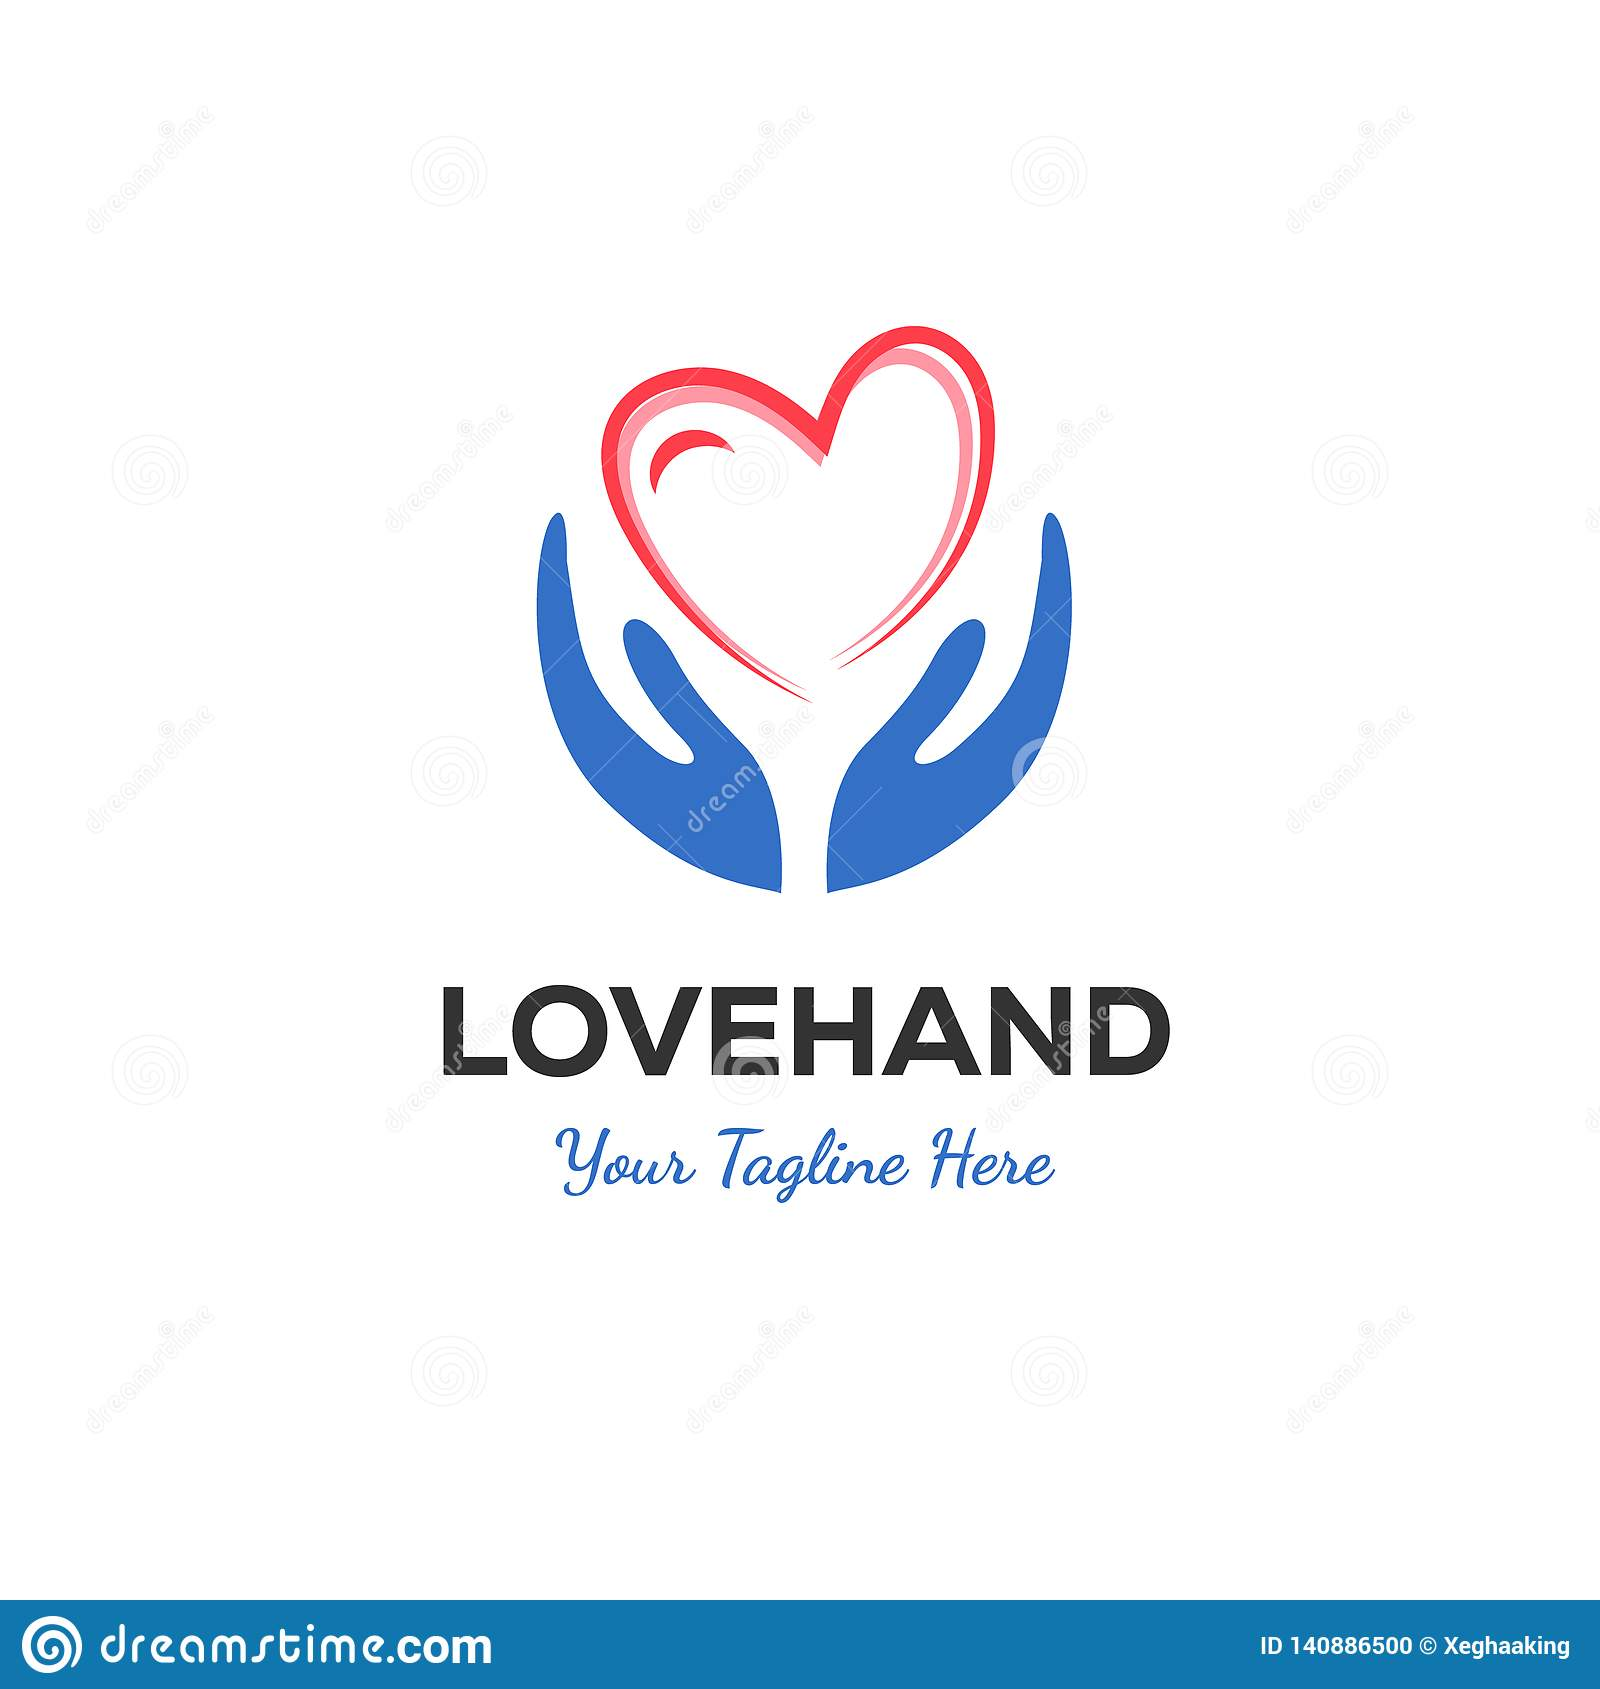 Hand and love logo designs